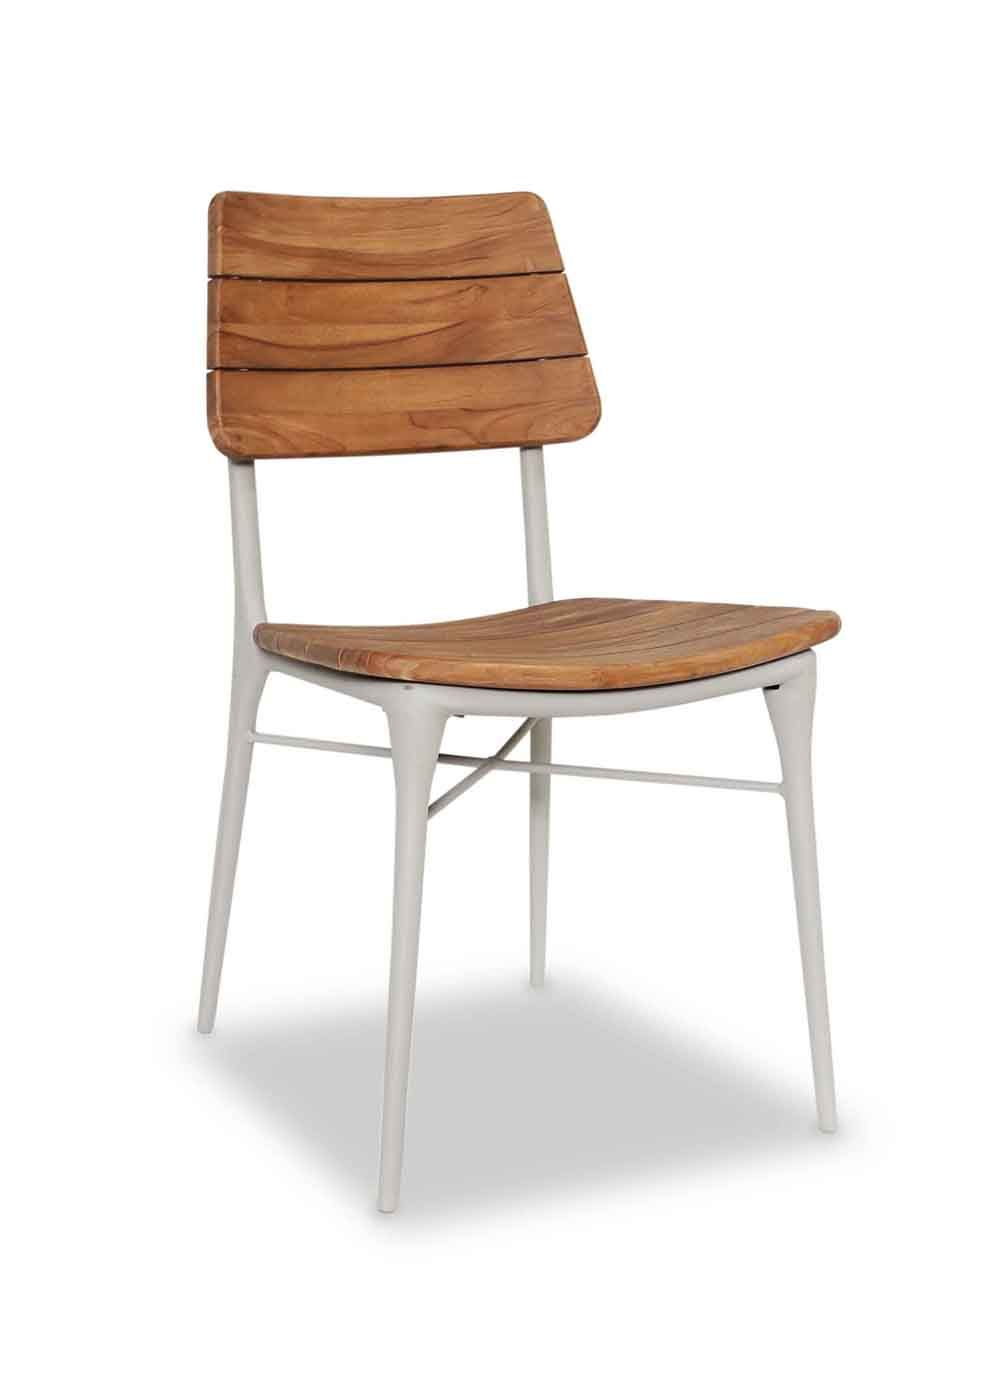 The Astrea Side Chair Is Cast Aluminum With A Teak Wood Seat And Intended For Quinn Teak Sofa Chairs (Image 23 of 25)